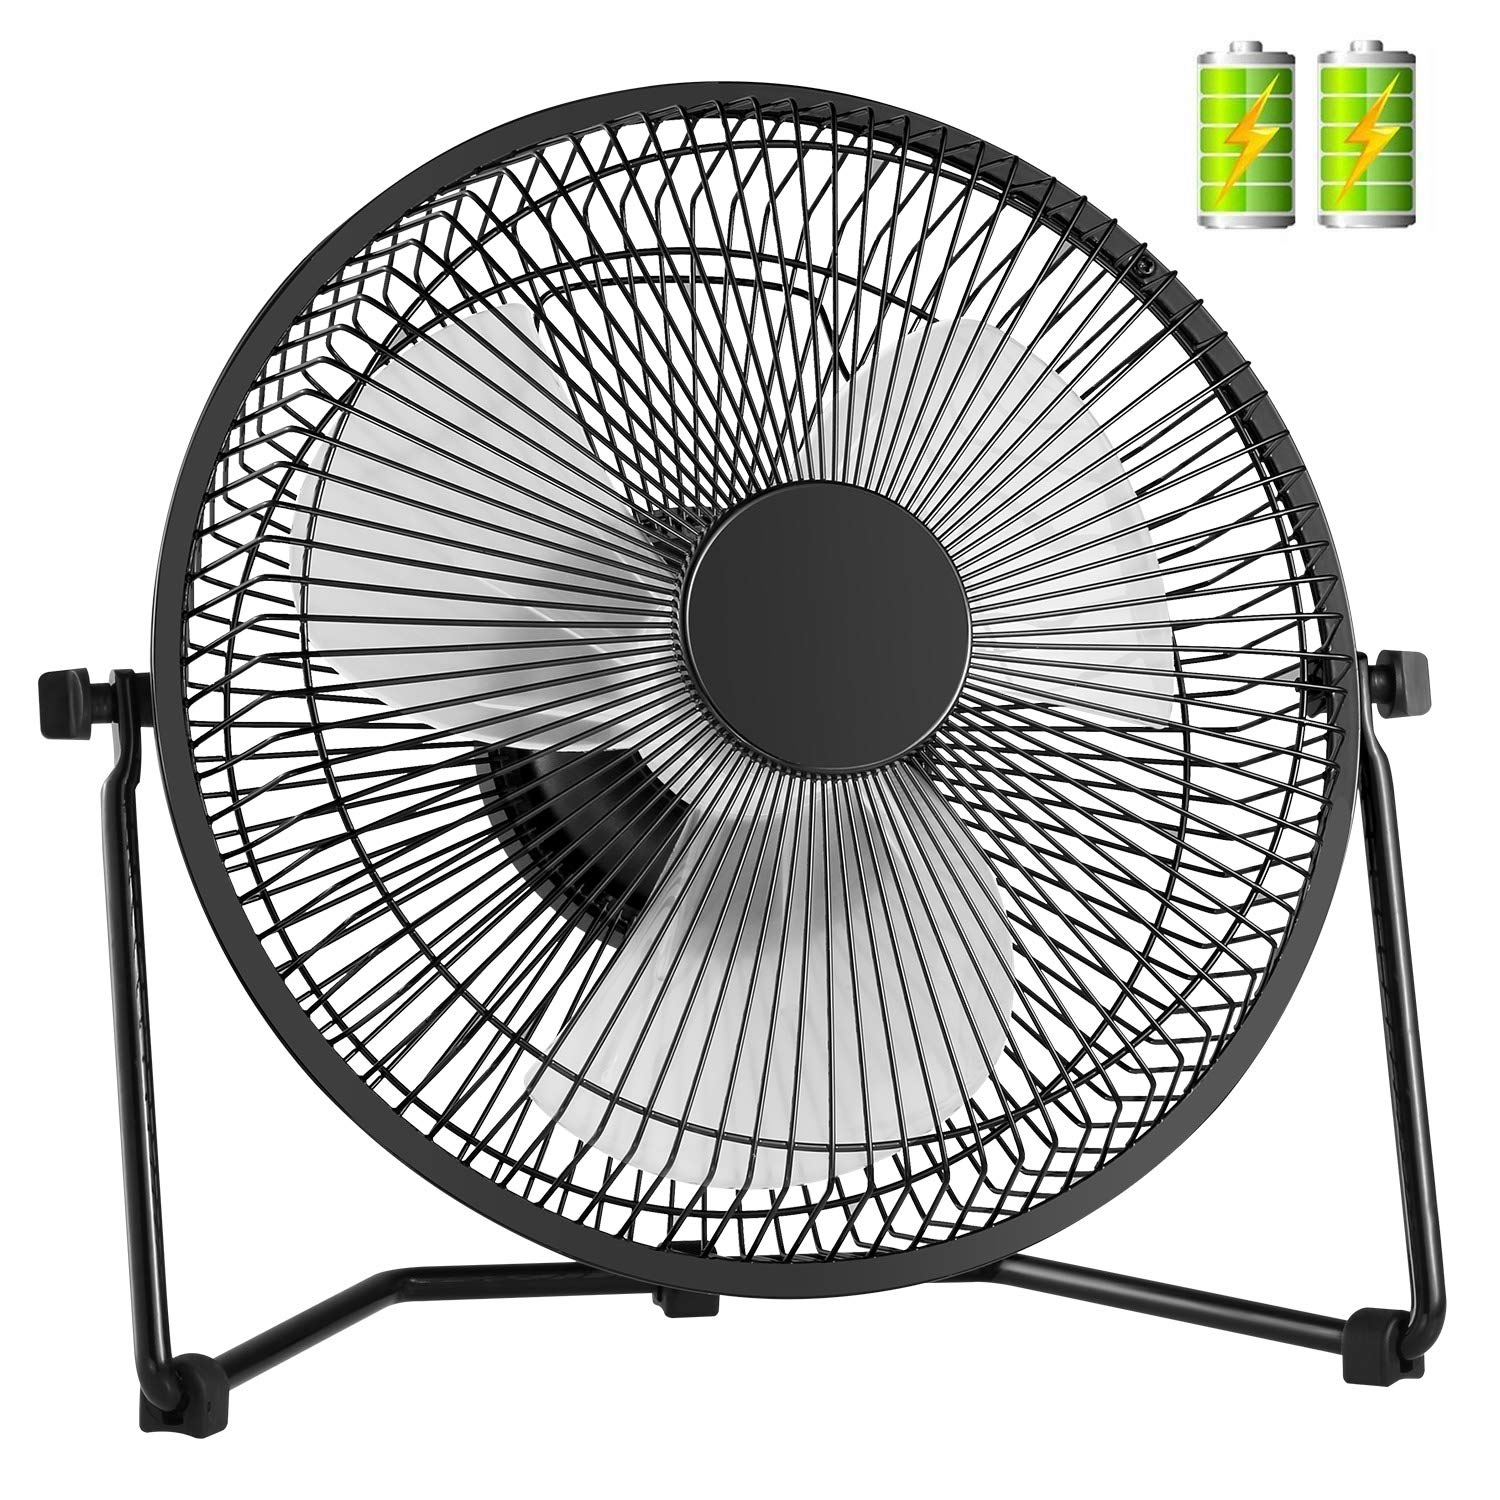 COMLIFE 11 Inch Battery Powered Desk Fan USB Table Fan, Rechargeable Portable Fan with 4400mAh Batteries, Quiet USB Metal Fan for Home, Office, Camping by COMLIFE